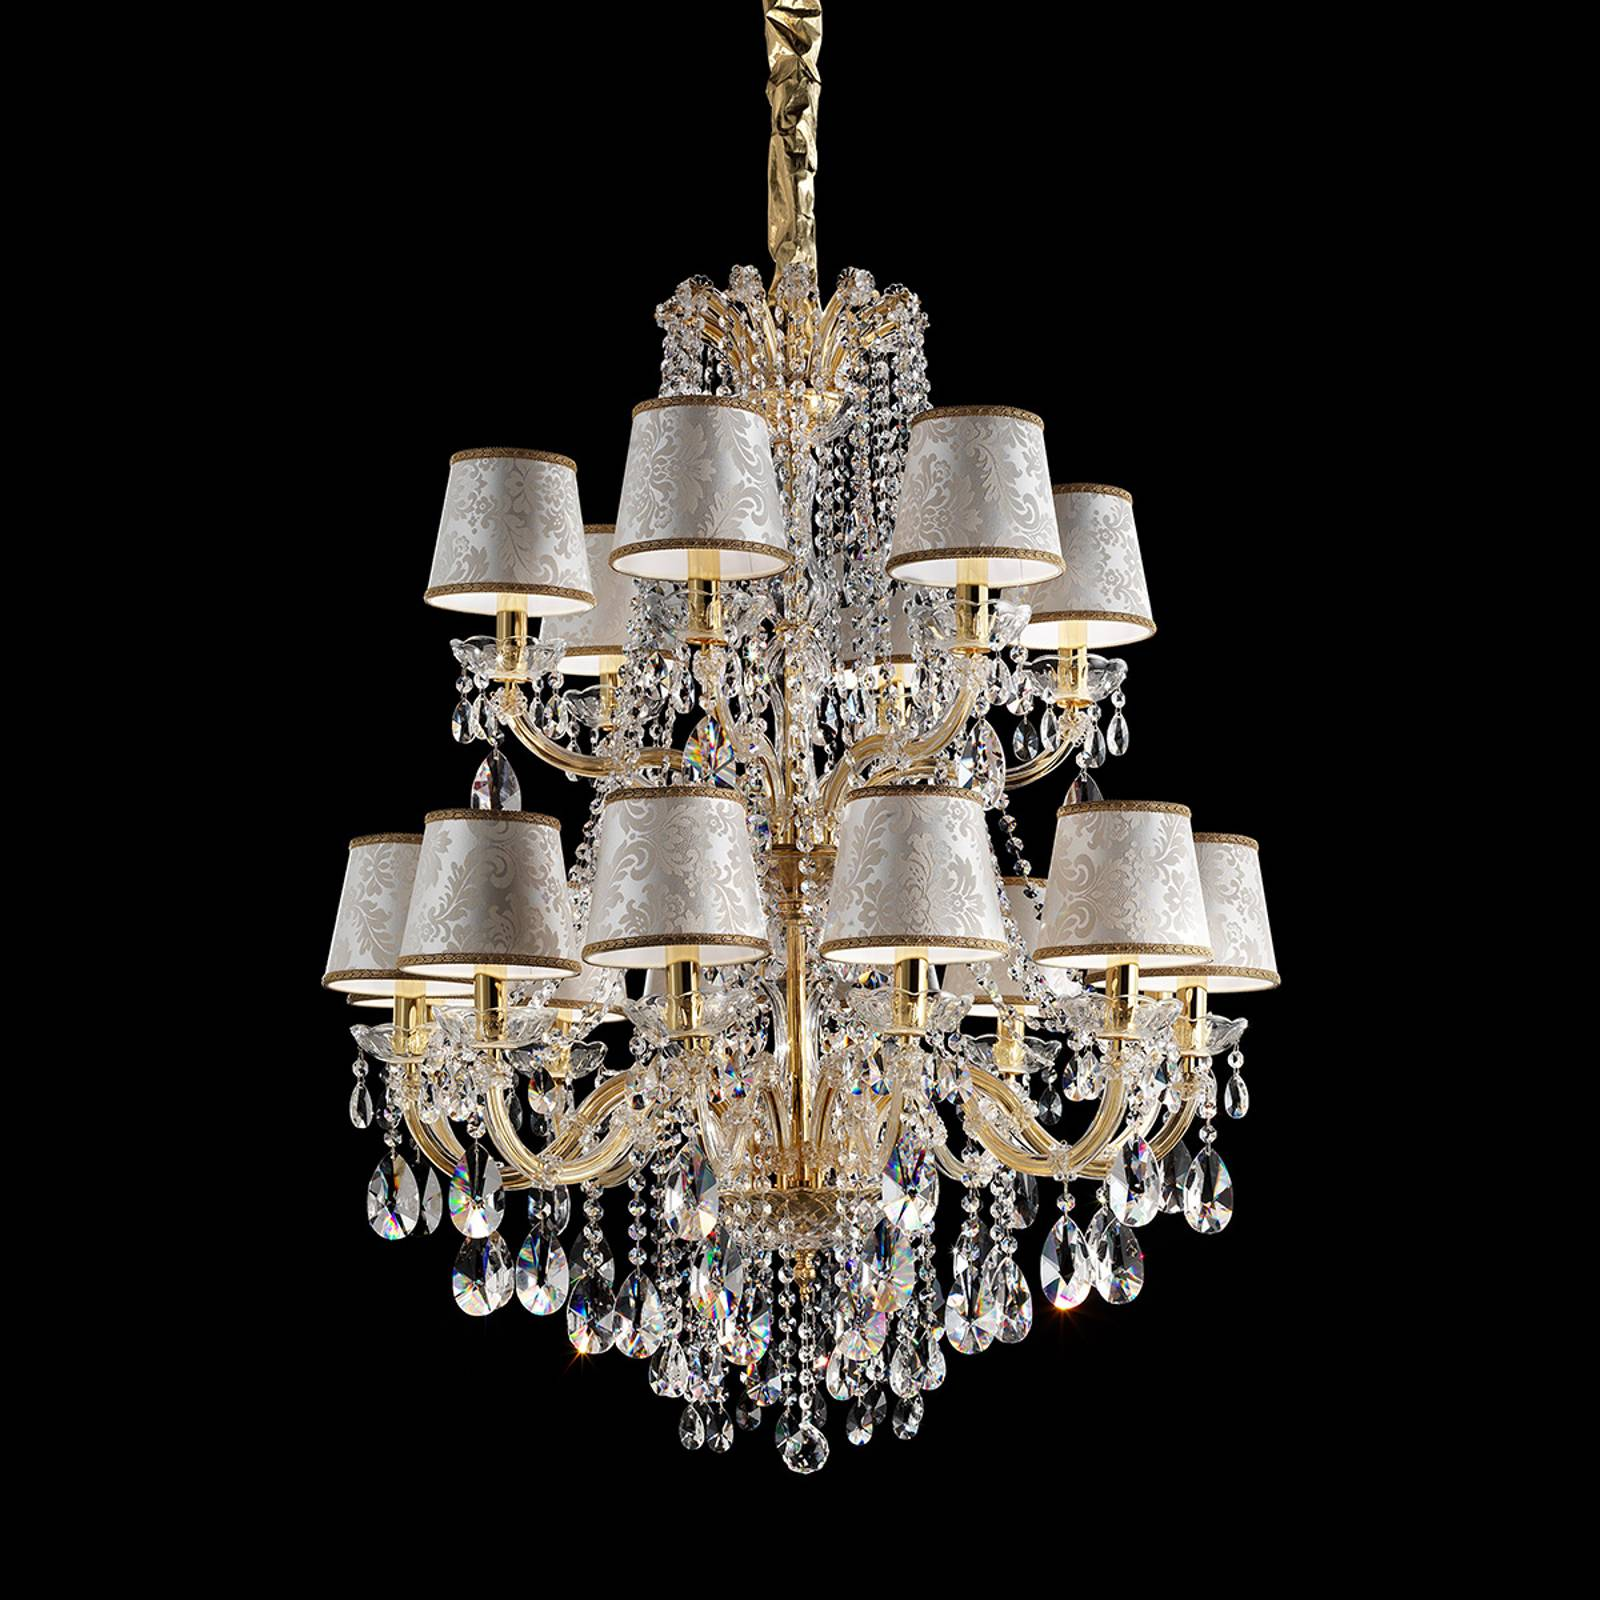 Marianna gold-plate chandelier from Masiero